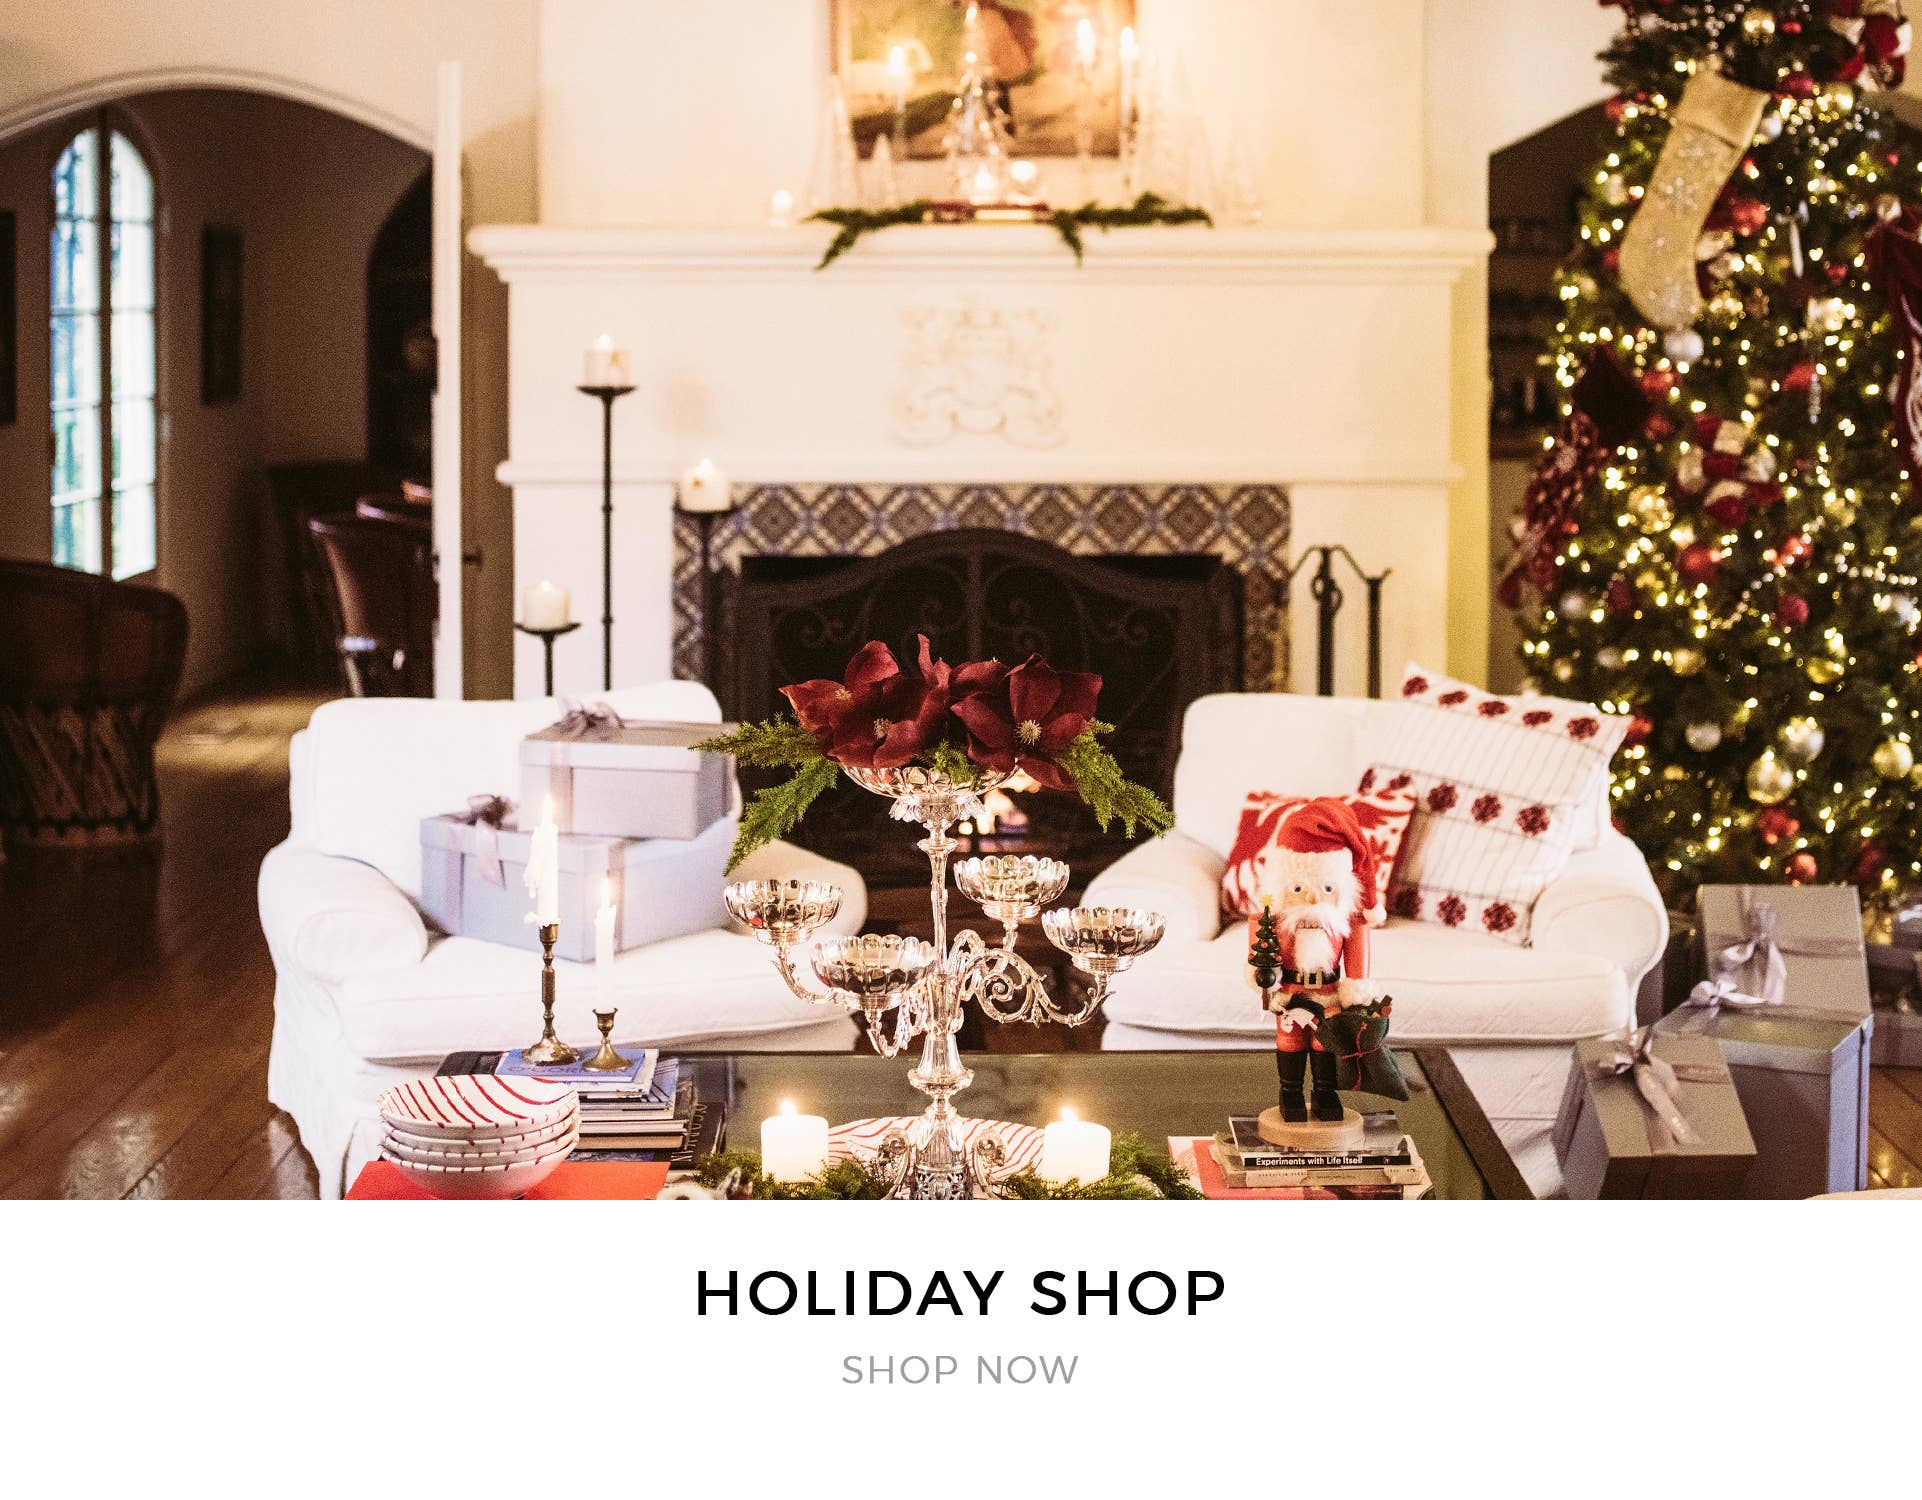 Shop our holiday gift collections for Christmas & Hanukkah, as well as ornaments to decorate your home!